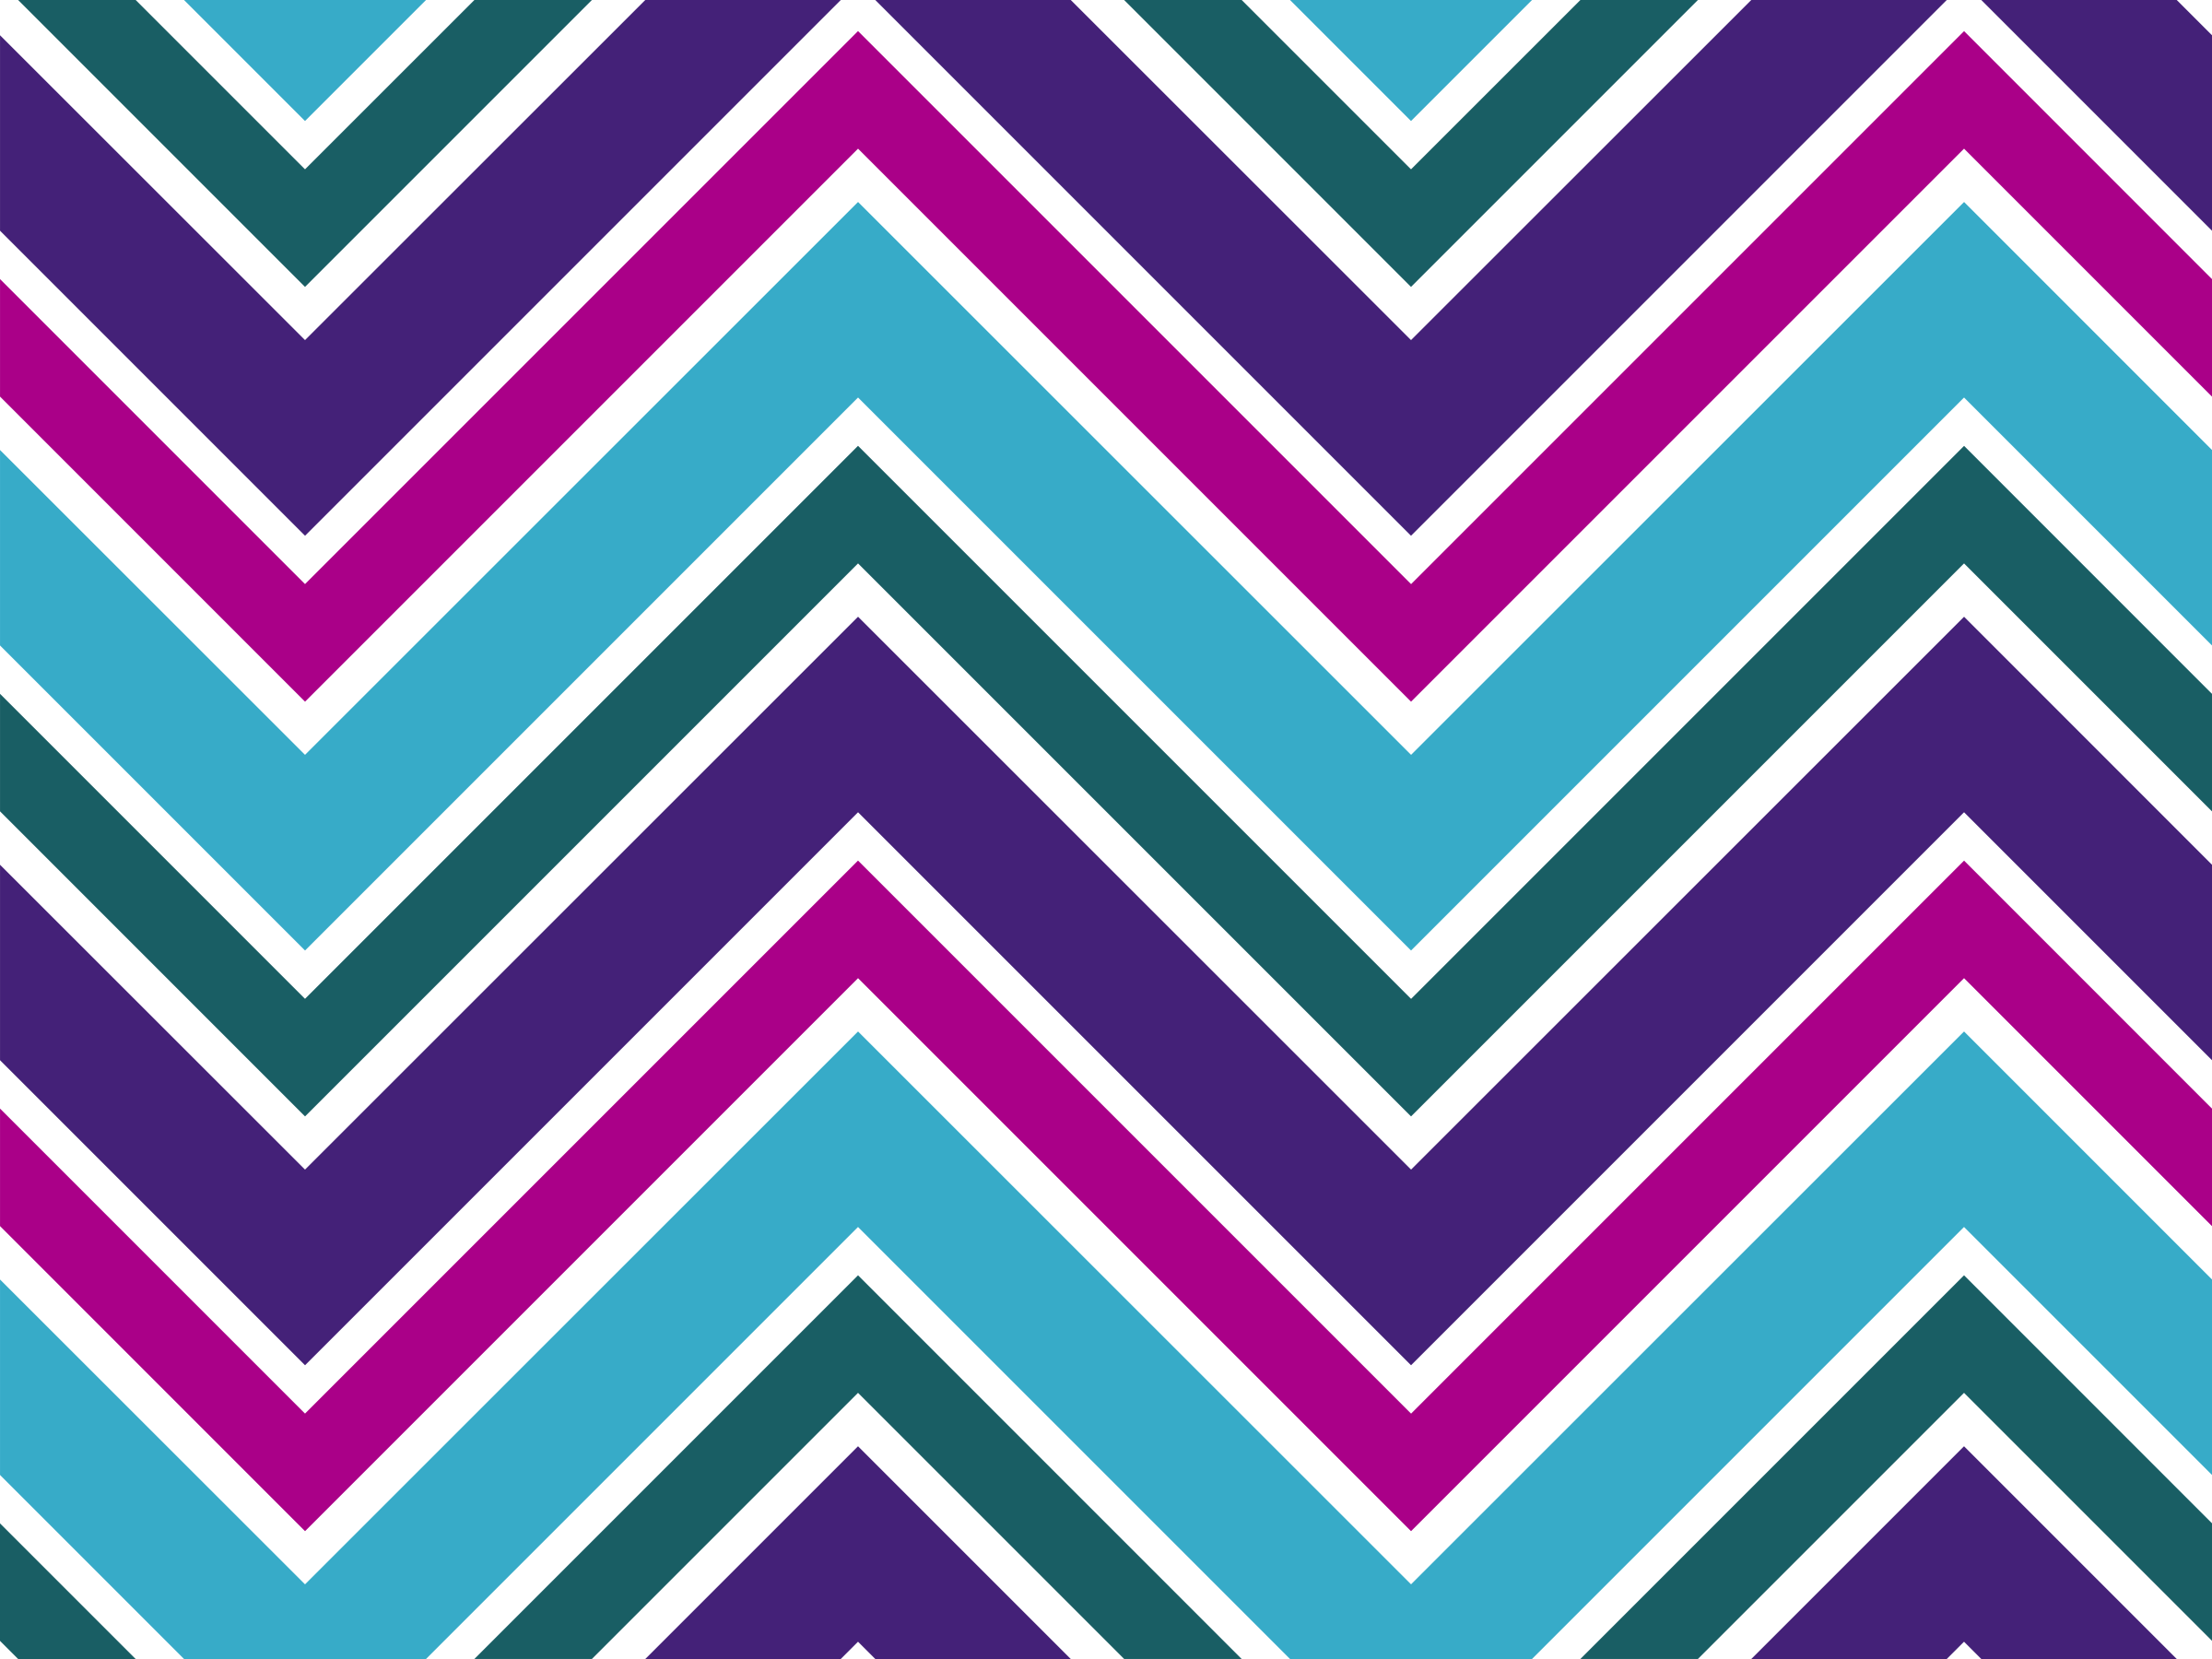 Chevron pattern by spacefem